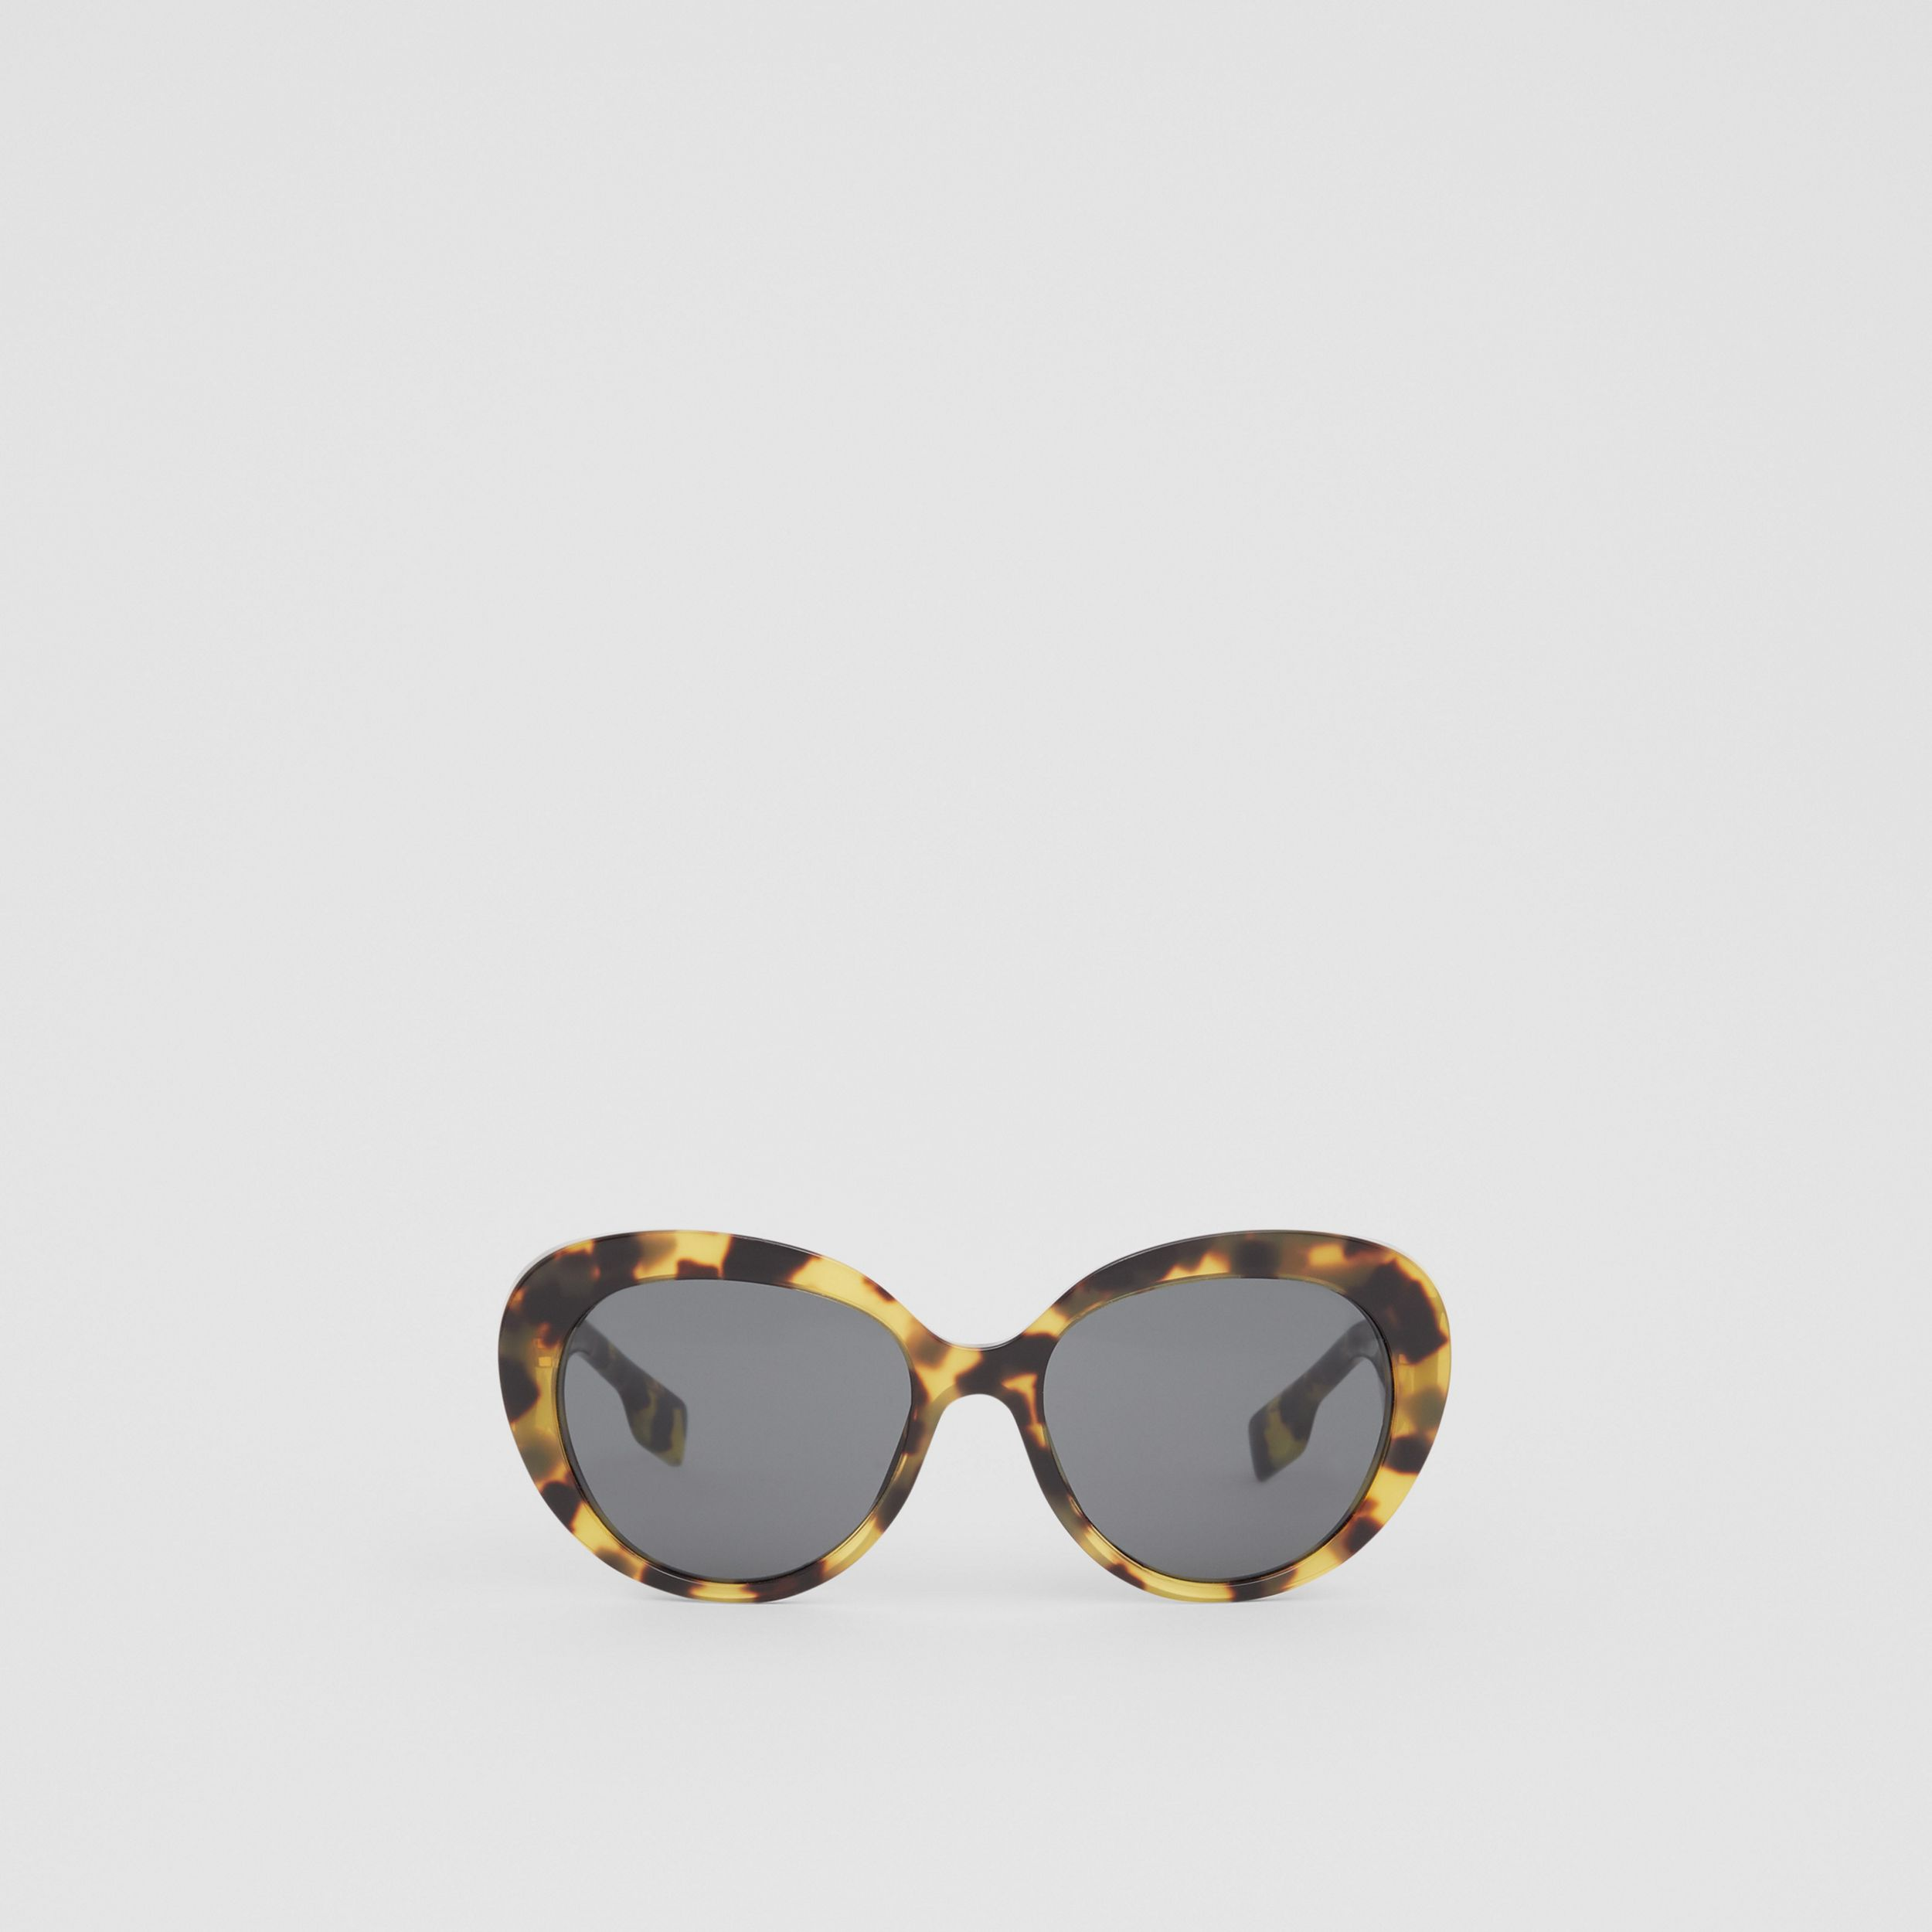 Monogram Motif Cat-eye Frame Sunglasses in Bright Tortoiseshell - Women | Burberry - 1